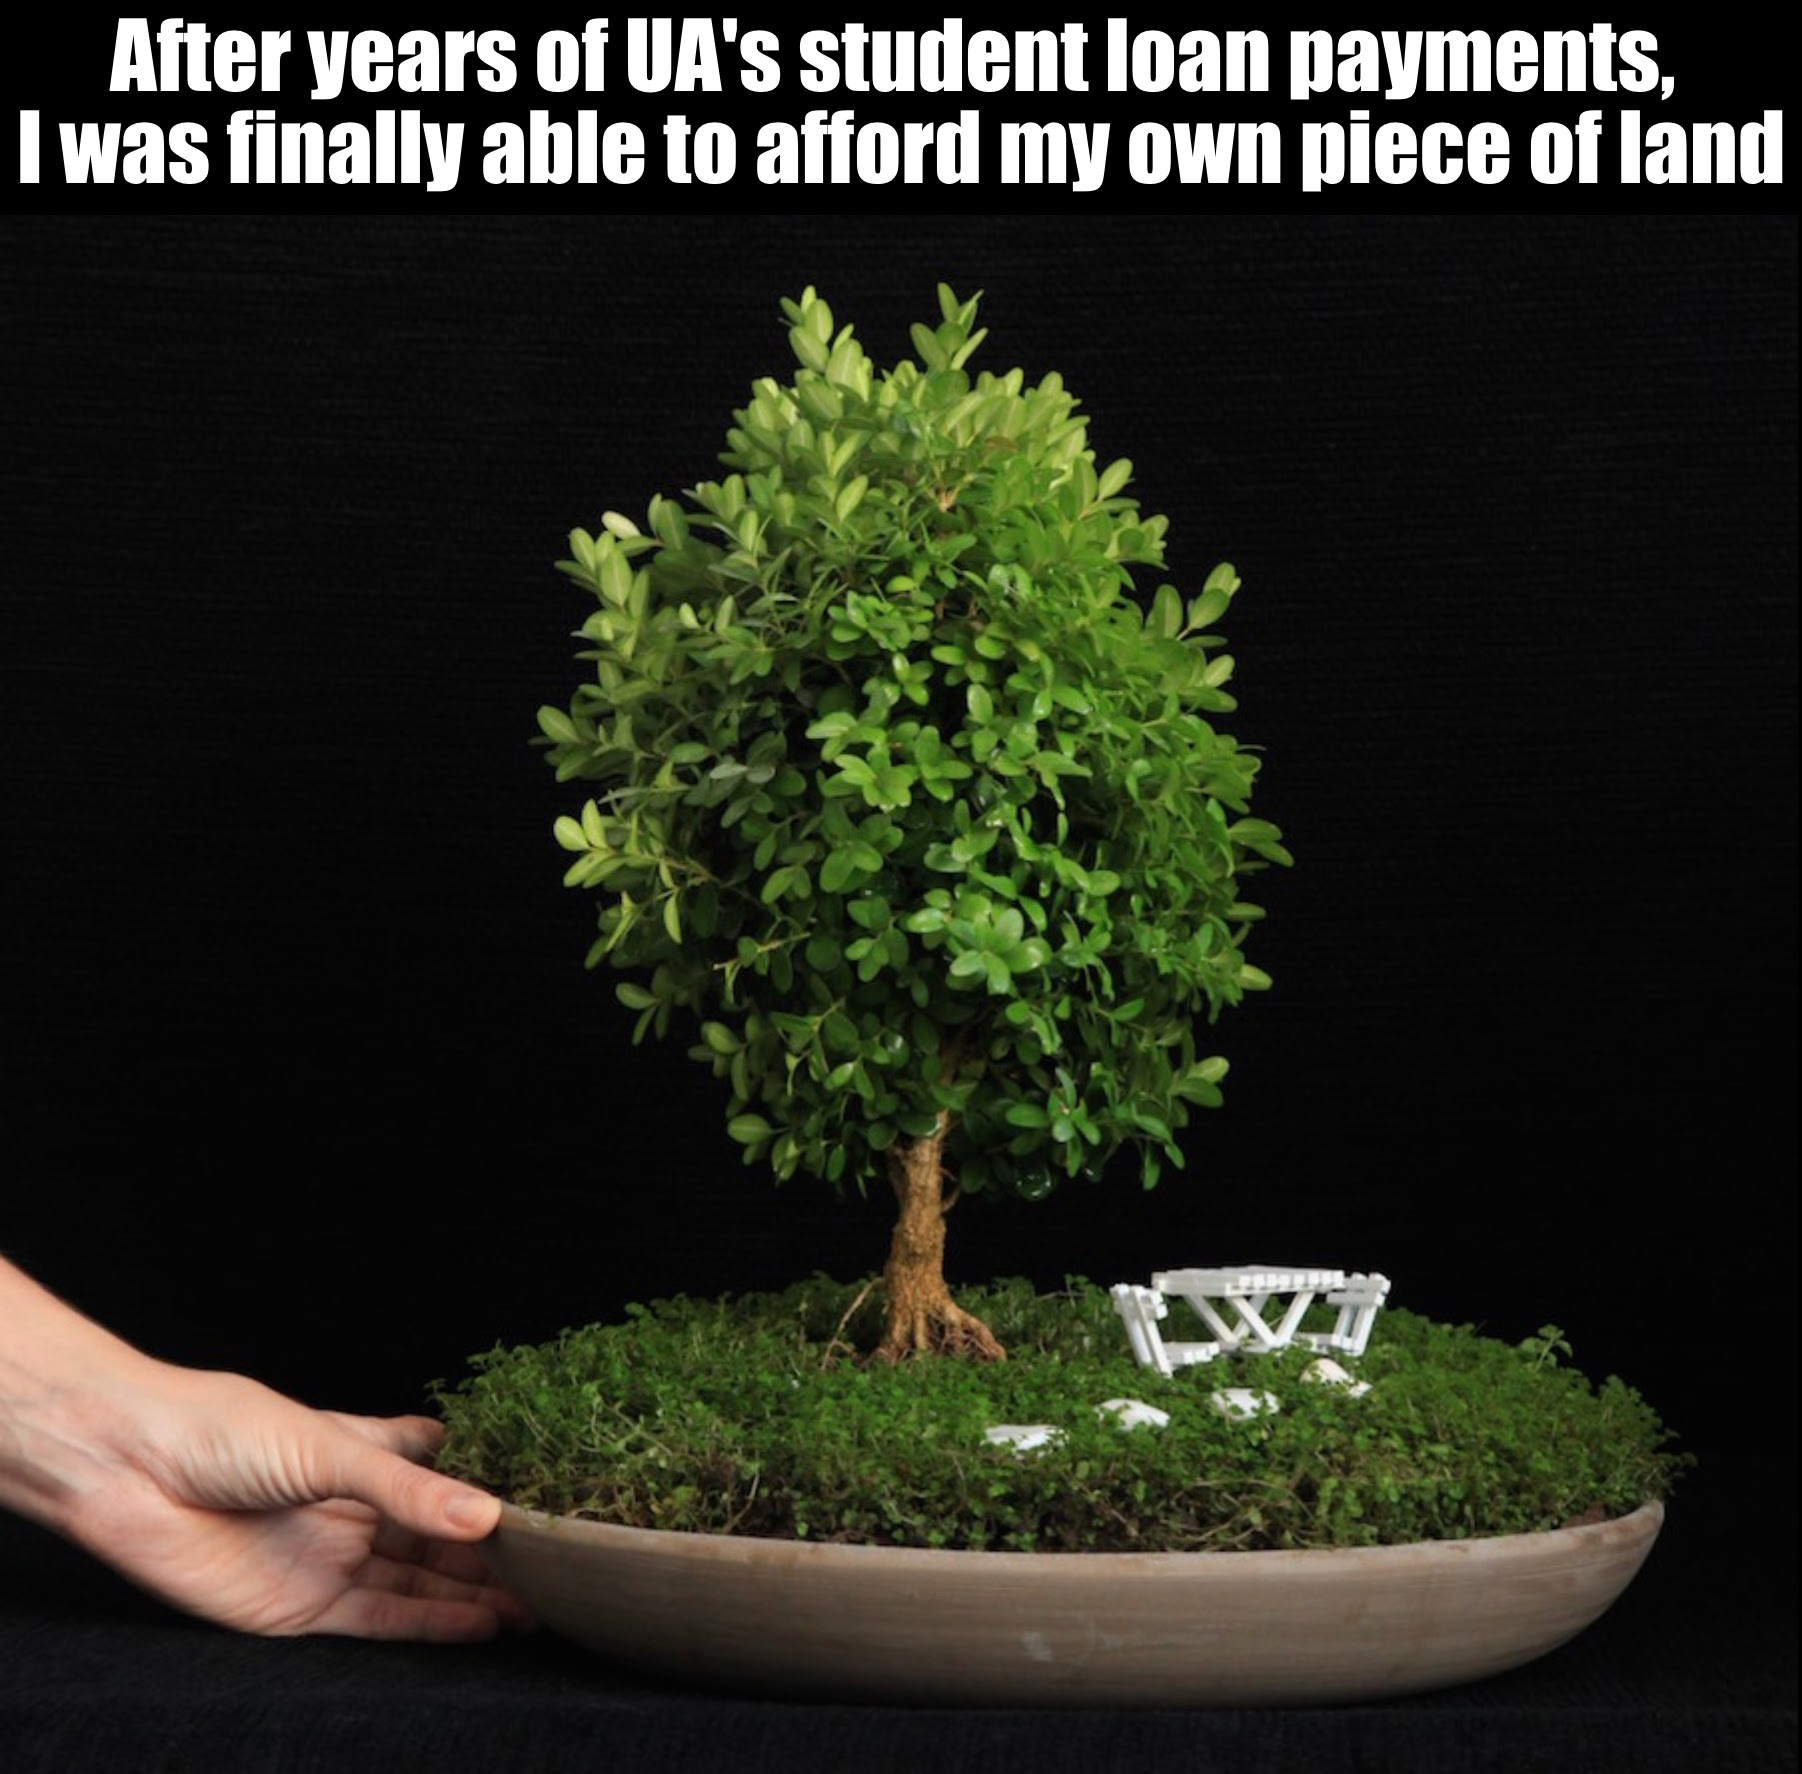 """Image of a tree with the message """"after years of UA's student loan payments, I was finally able to afford my own piece of land"""""""